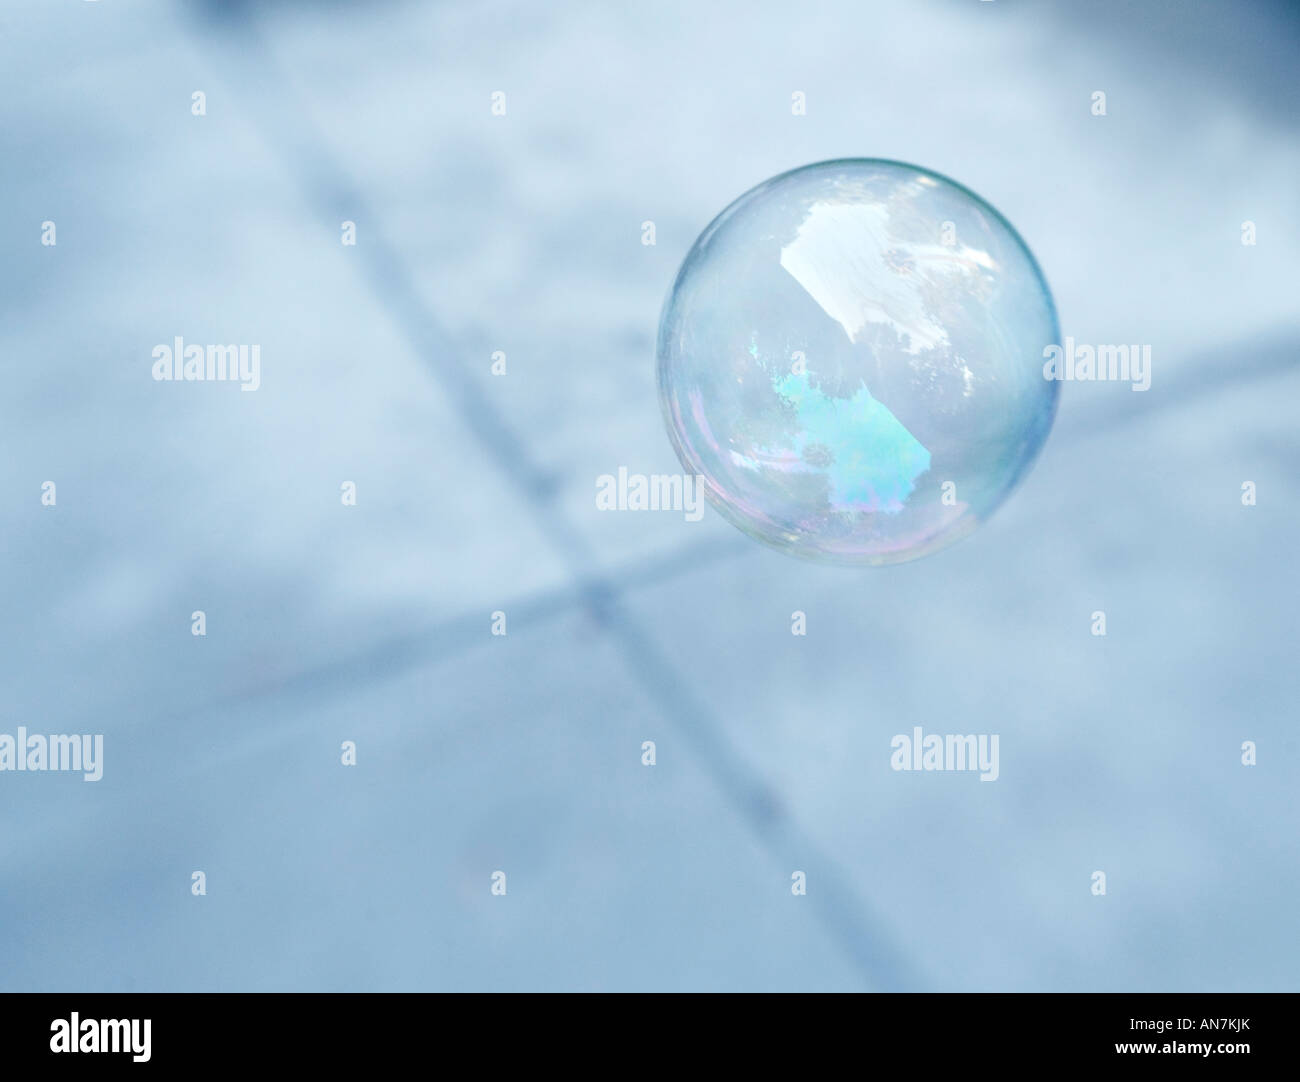 floating bubble made from soap over x pattern - Stock Image